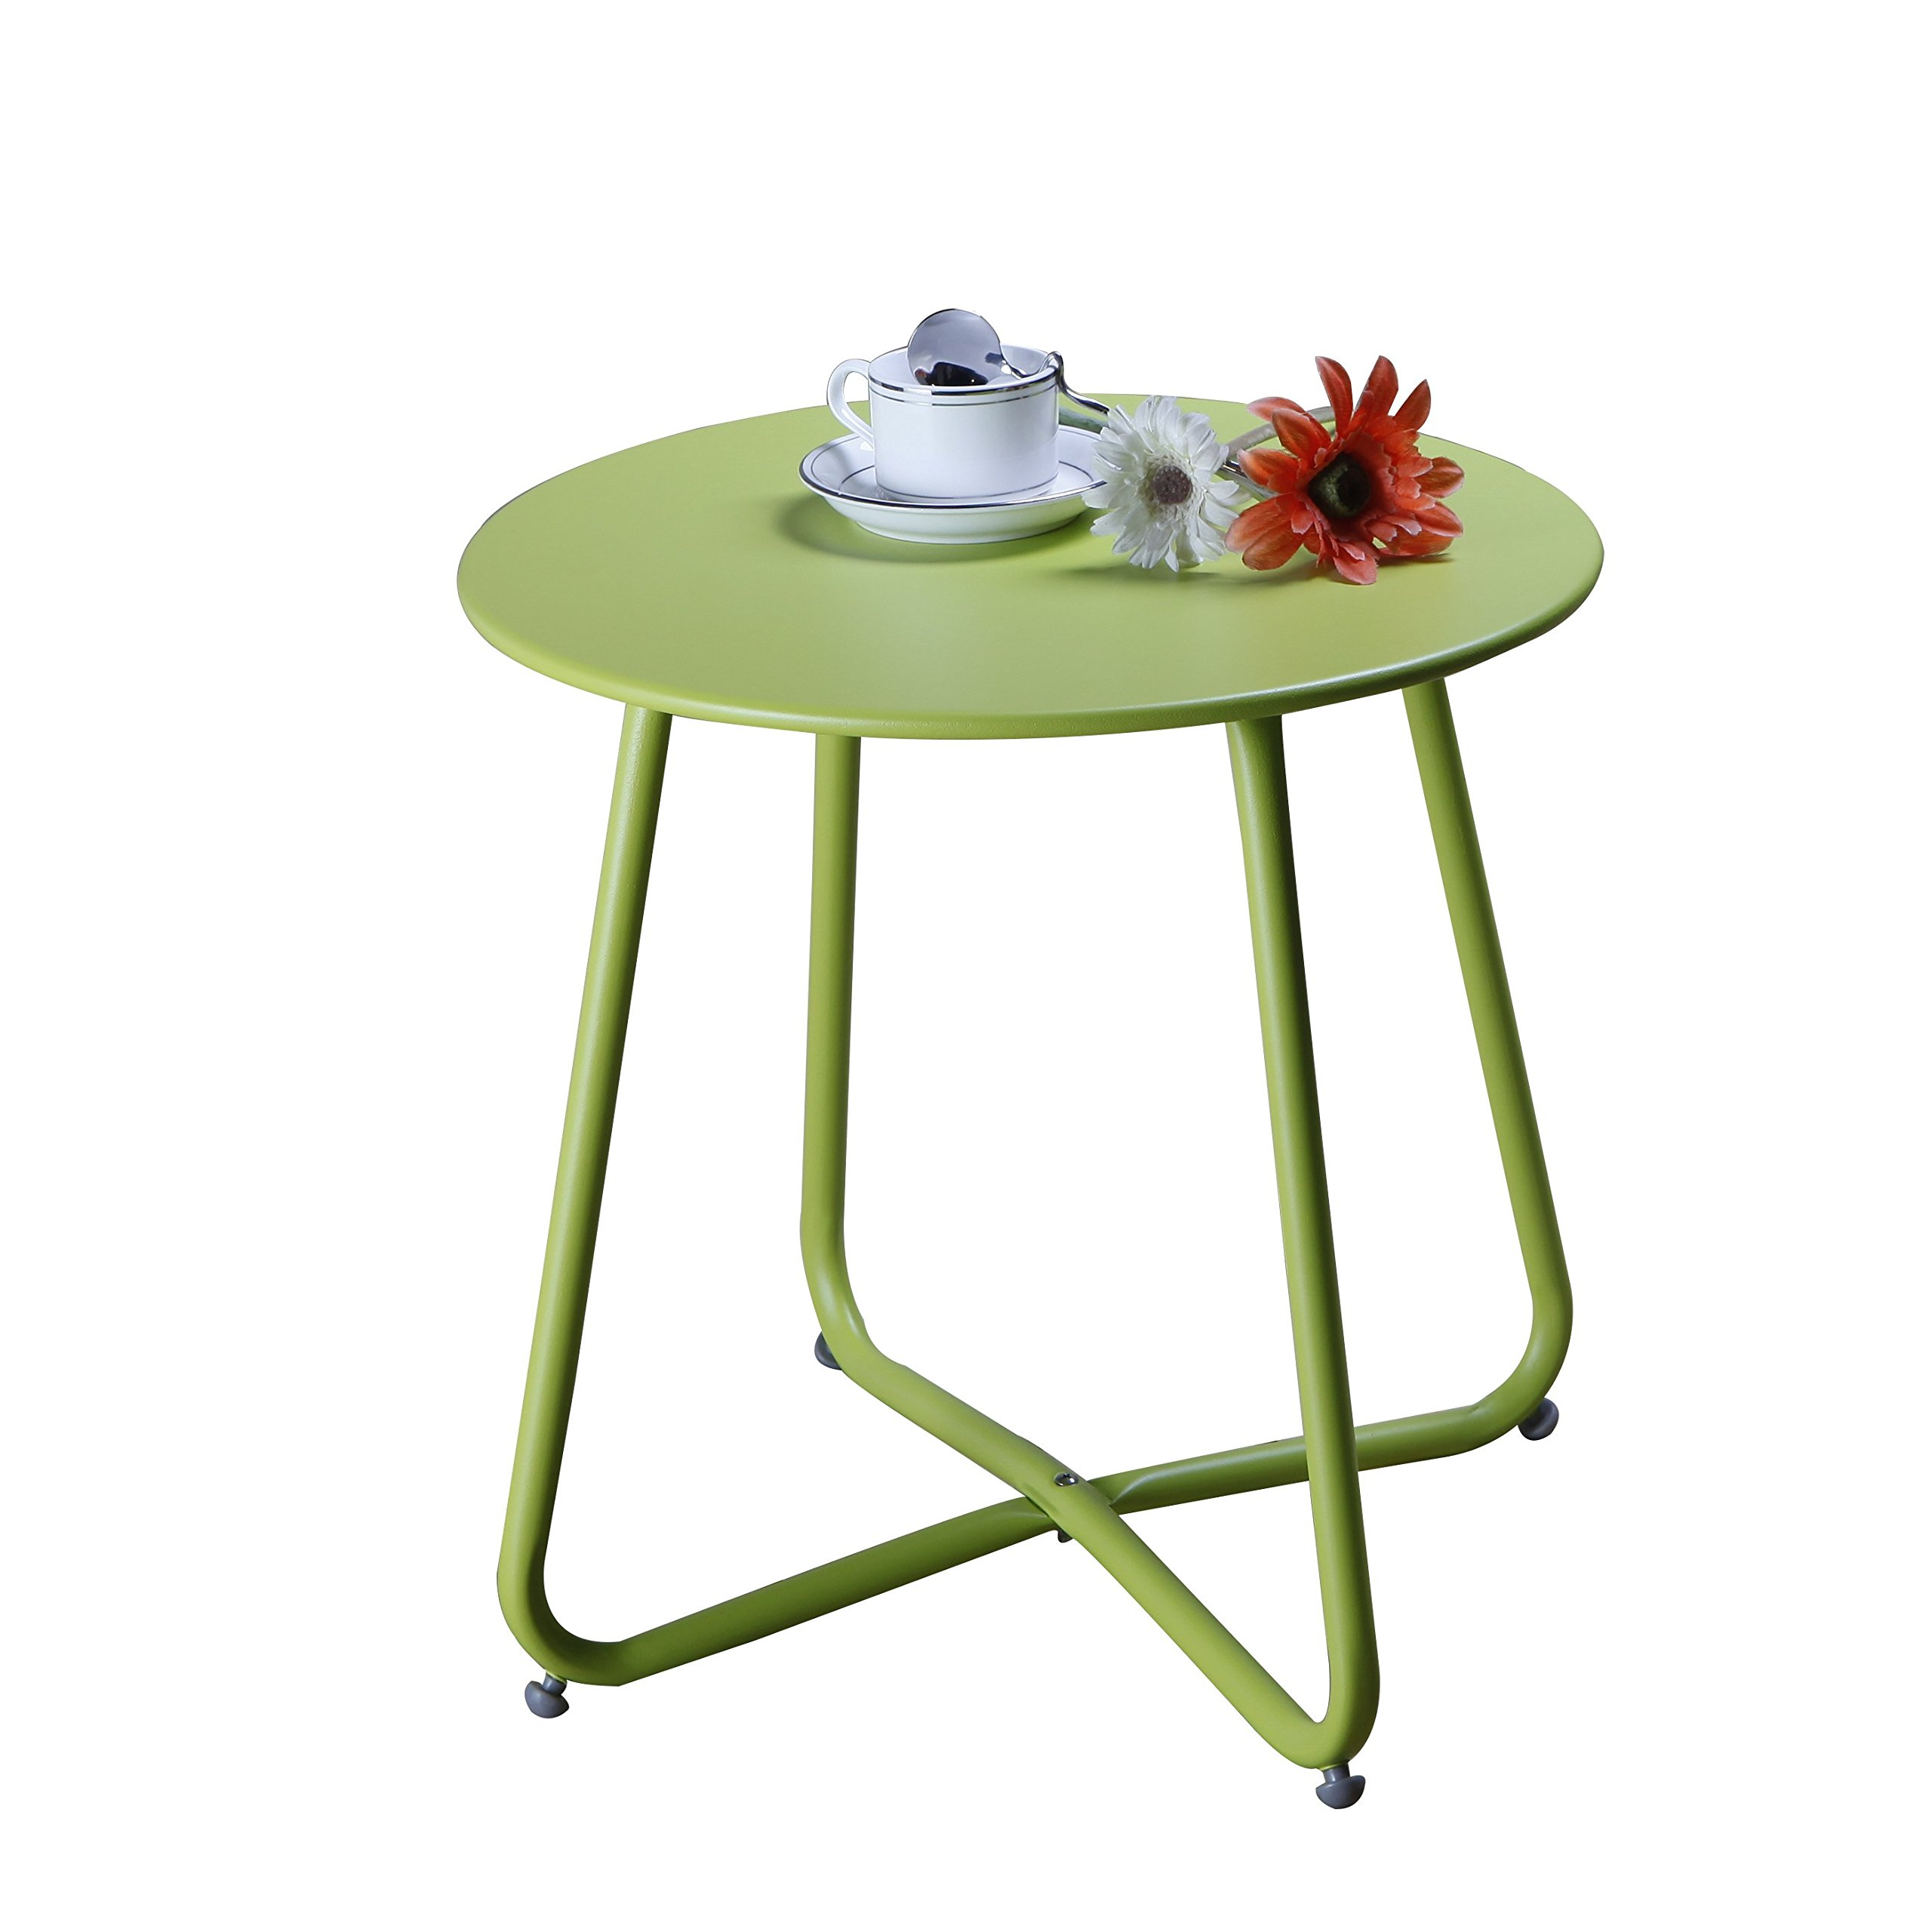 Grand Patio Steel Patio Coffee Table, Weather Resistant Outdoor Side Table, Small Round End Tables, Lime Green